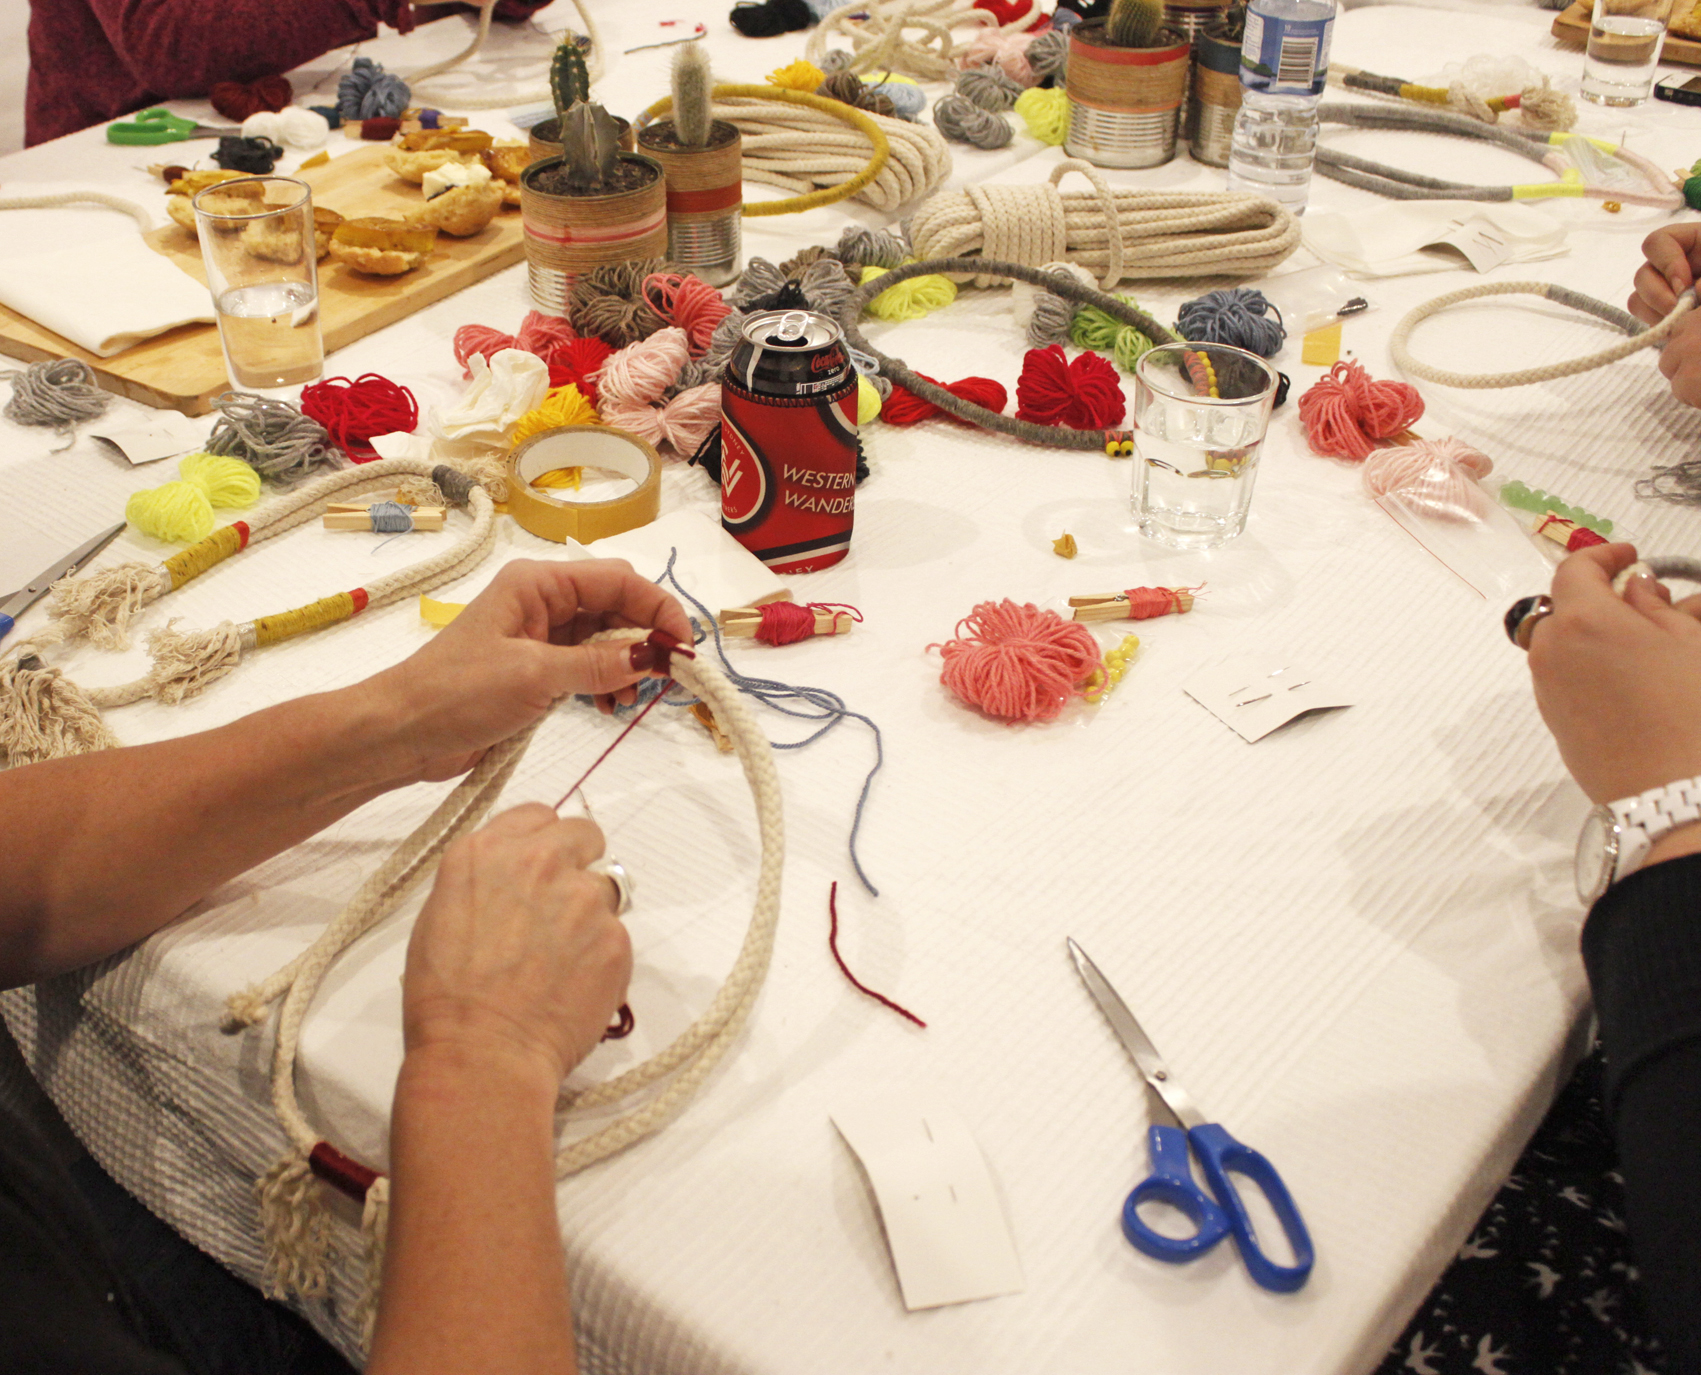 DIY Nautical Rope Necklace Workshop, The Corner Store Gallery, Orange NSW, craft party, photograph by Madeline Young